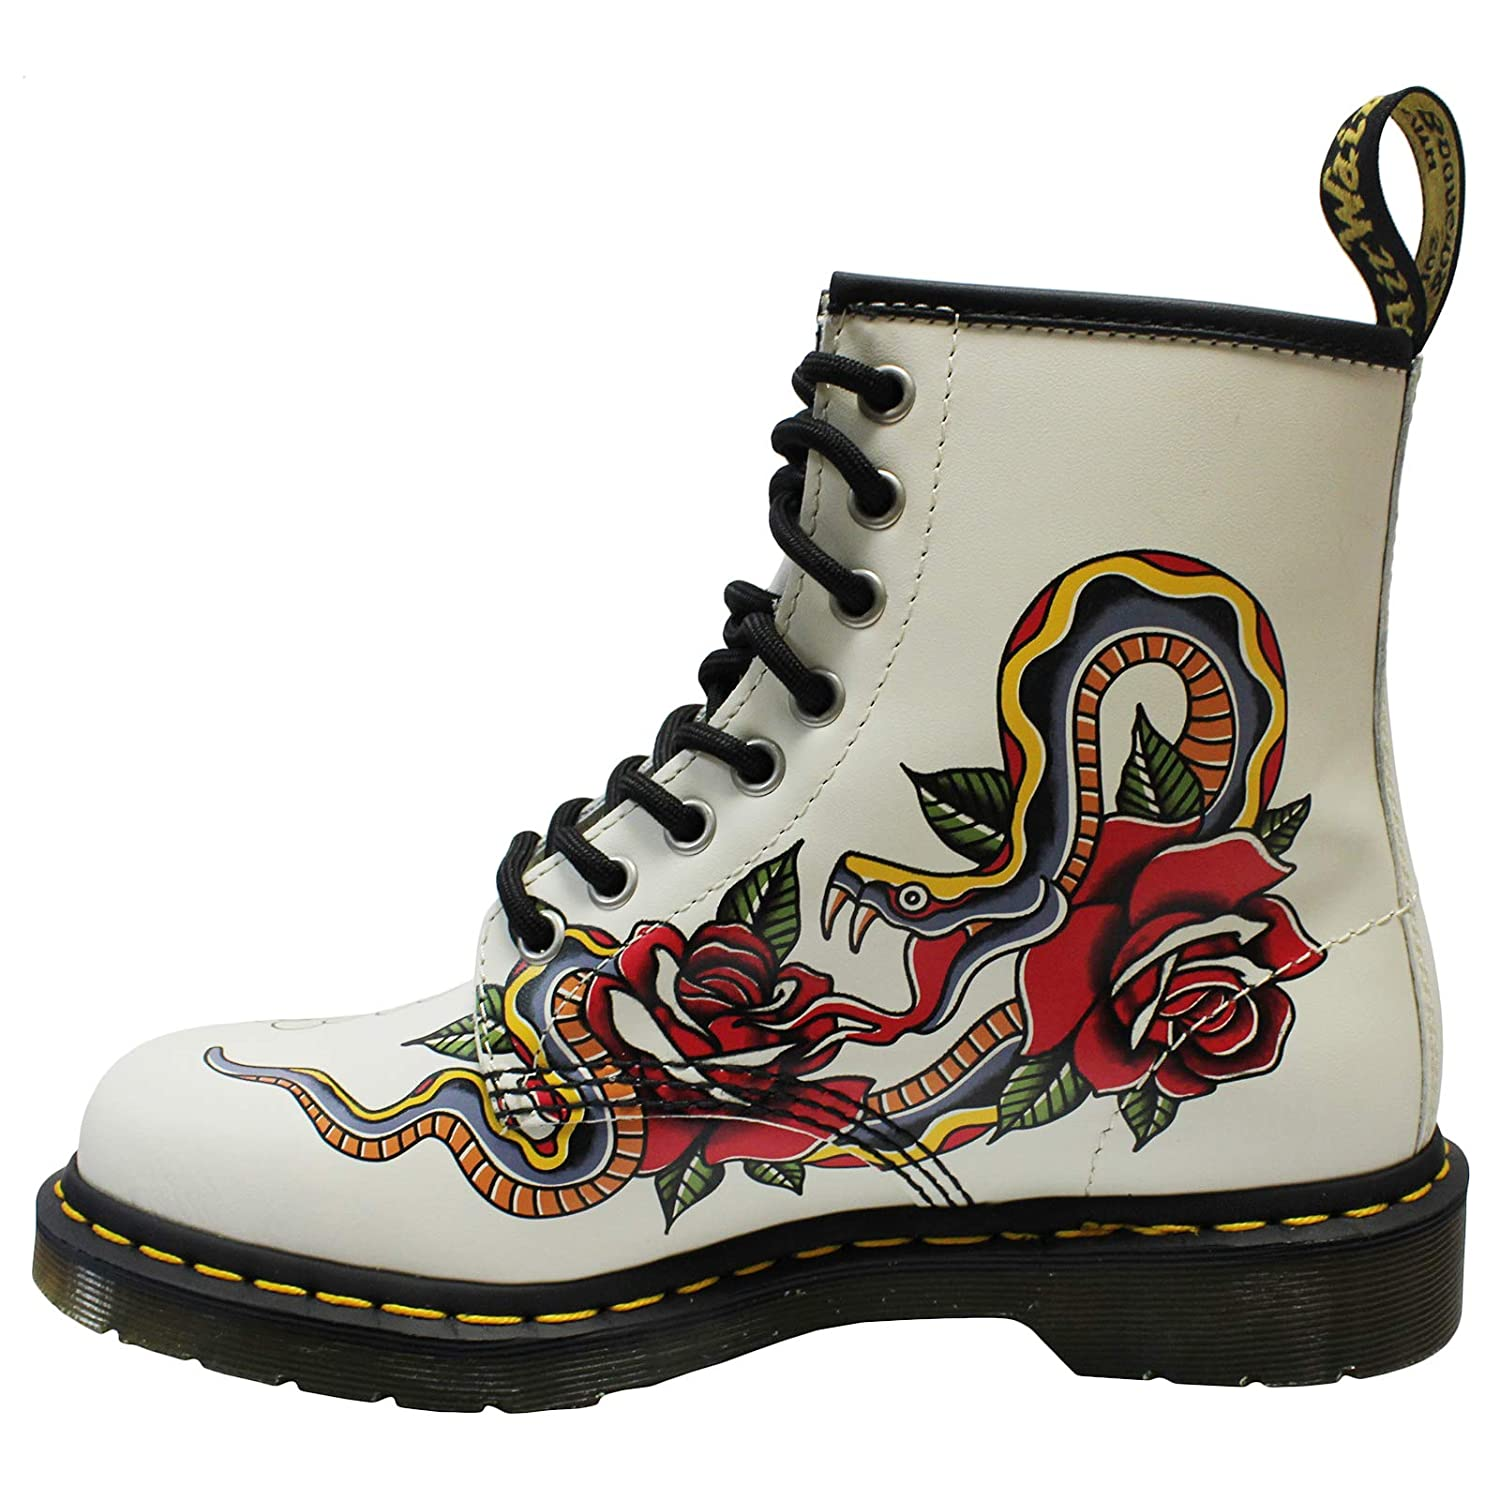 Dr. Martens Womens 1460 Grez 8-Eyelet Leather Boots B078ZJSXFH B078ZJSXFH B078ZJSXFH 10 B(M) US Women / 9 D(M) US Men Bone Multi 58a7f4